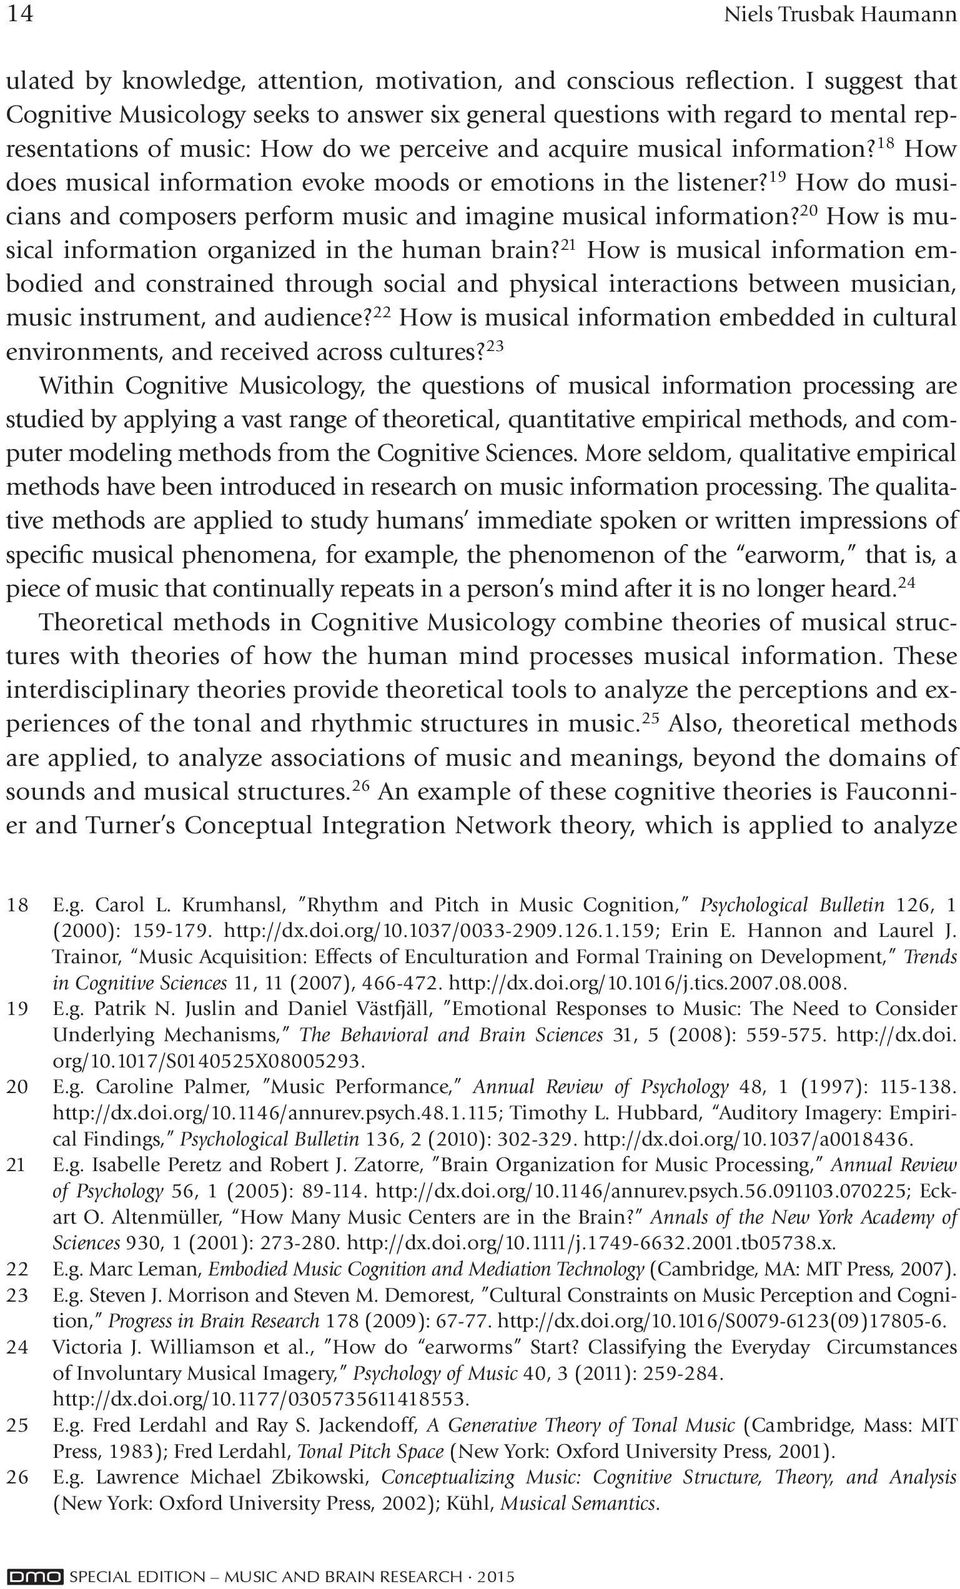 18 How does musical information evoke moods or emotions in the listener? 19 How do musicians and composers perform music and imagine musical information?